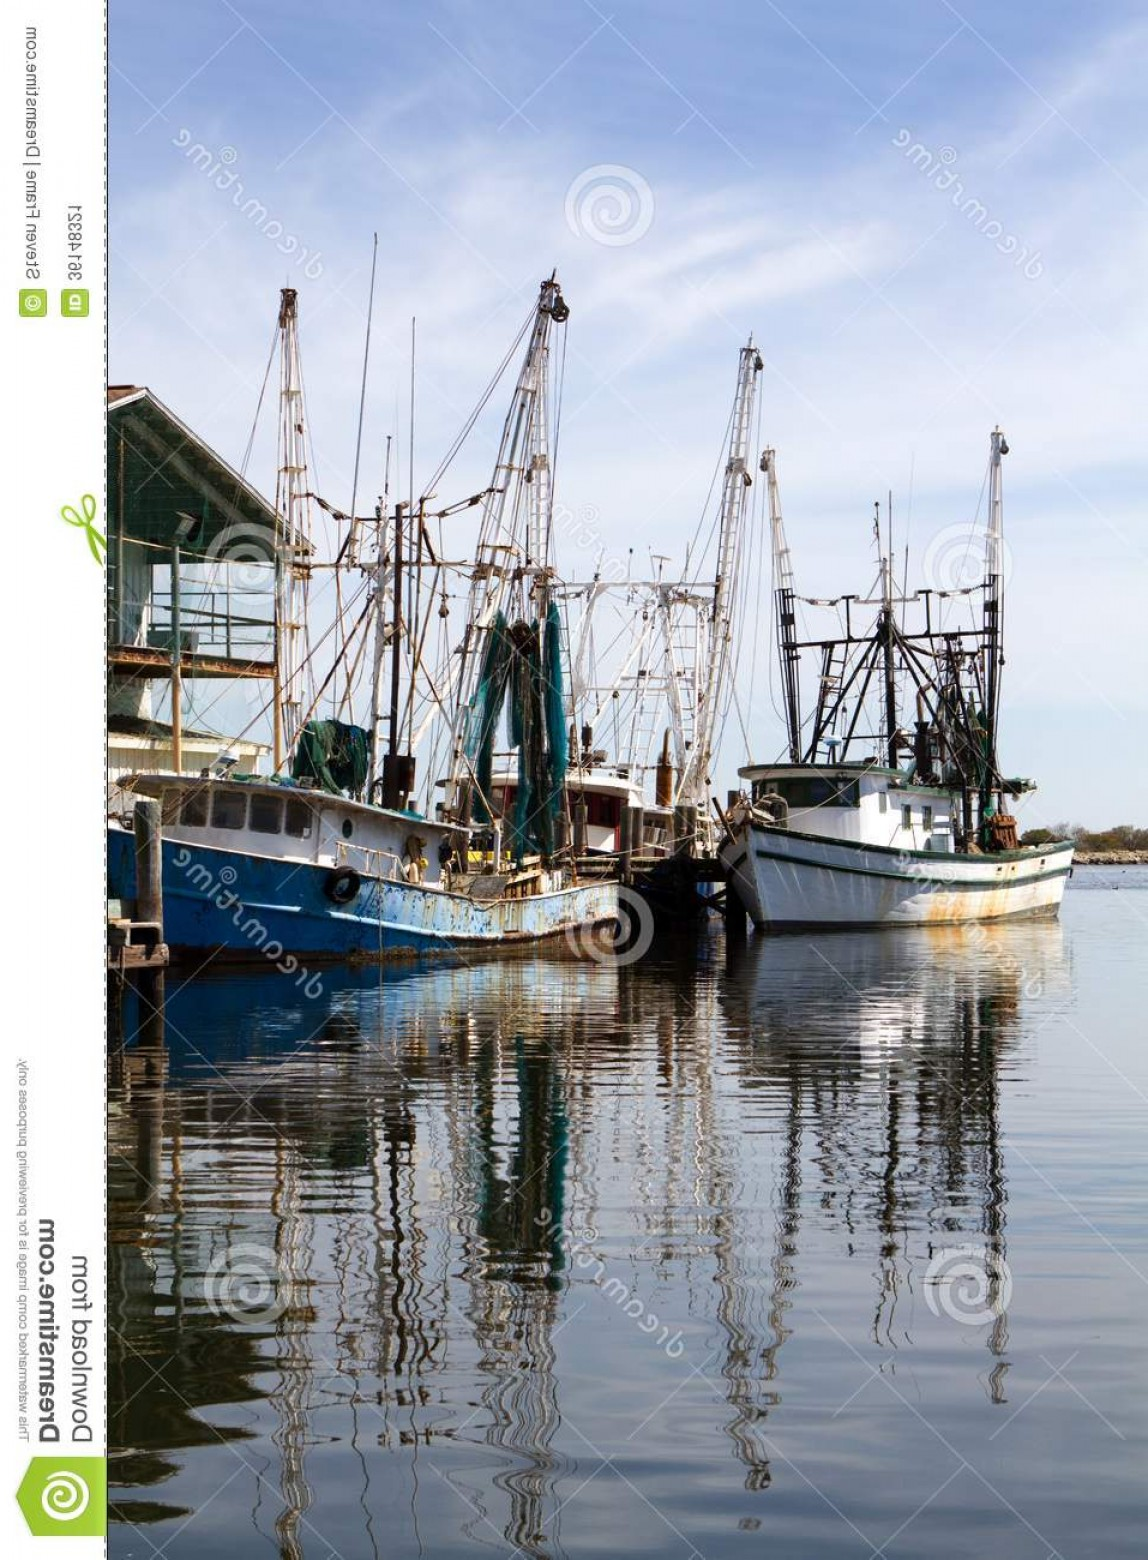 Vector Art Shrimper: Stock Image Docked Shrimp Boats Two Old Rusty Pier Reflections Water Image